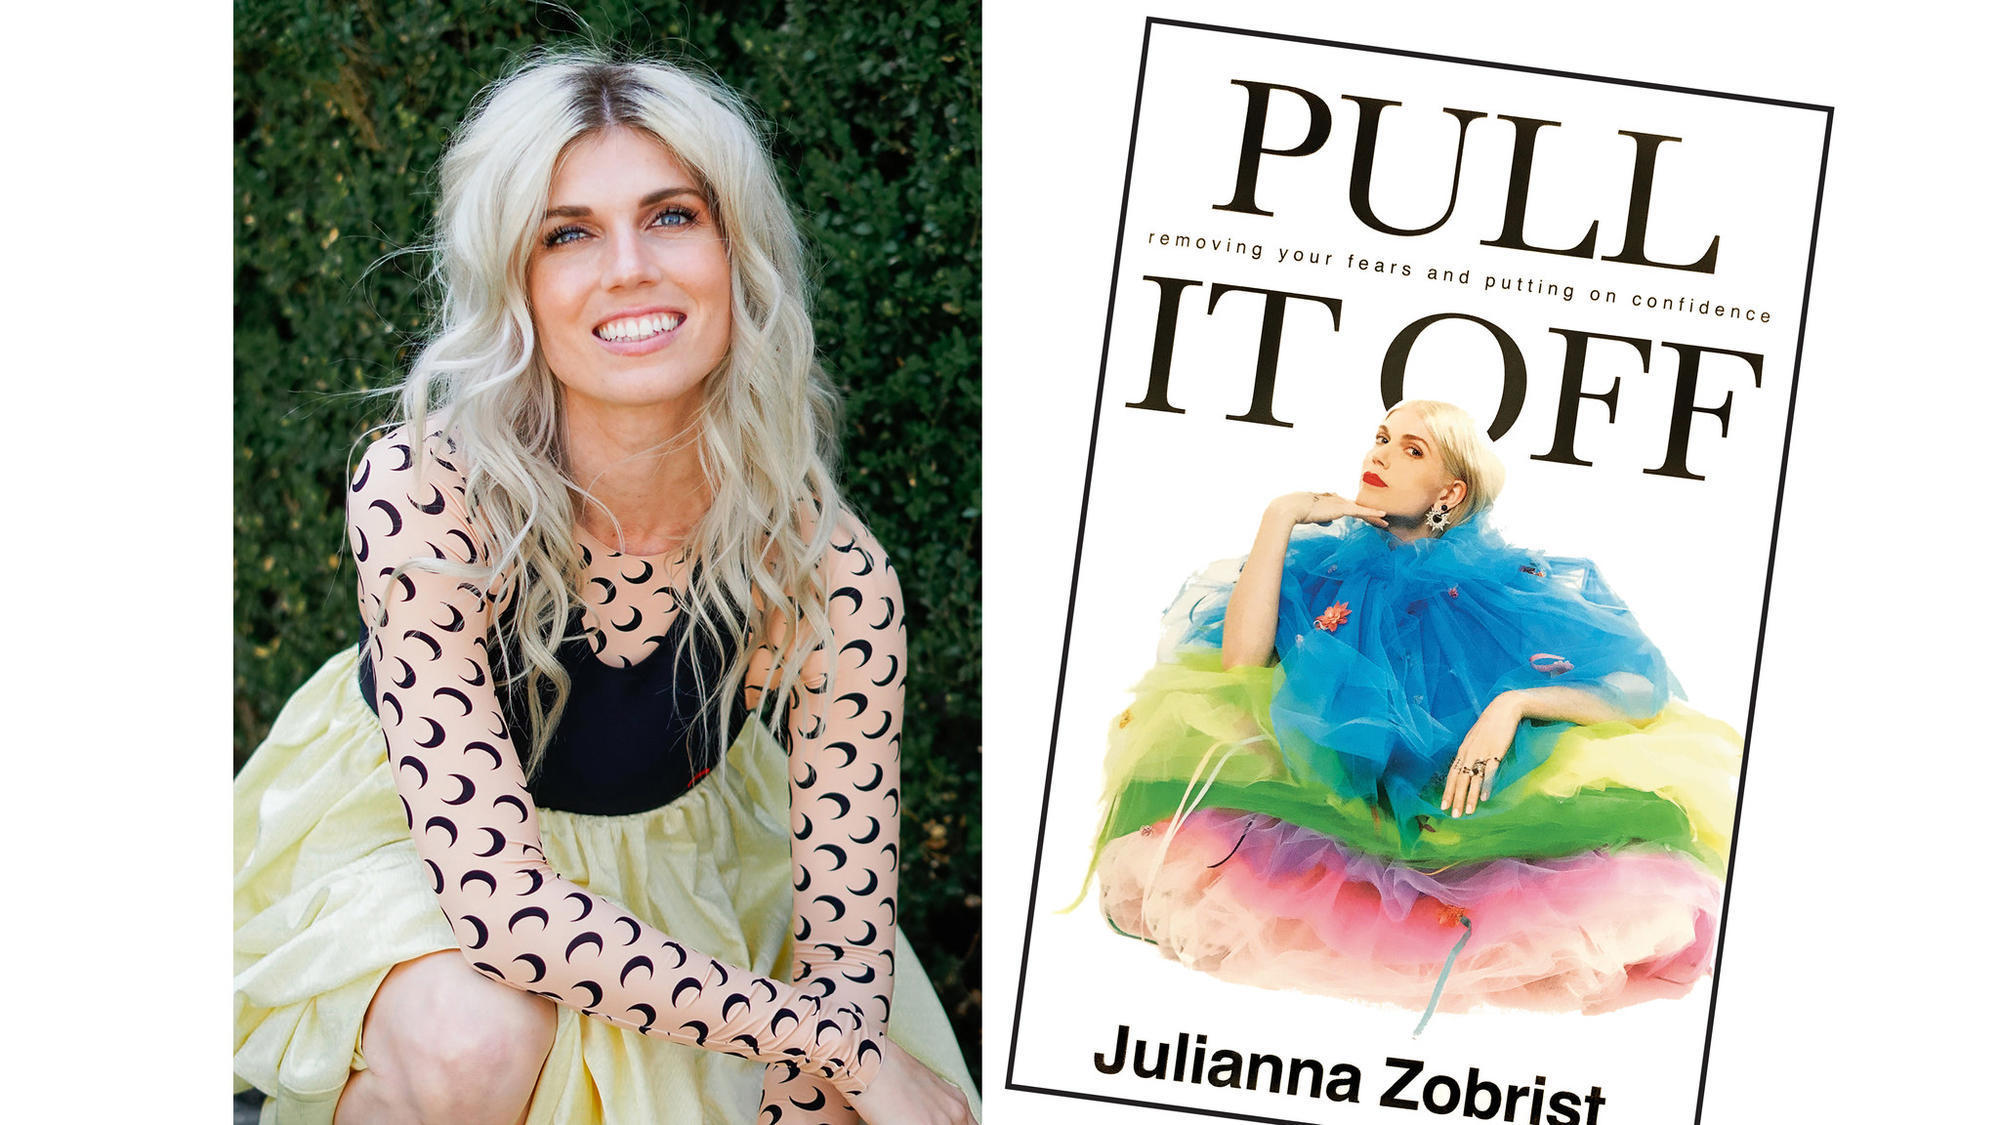 Julianna Zobrist talks about fears fashion and life with